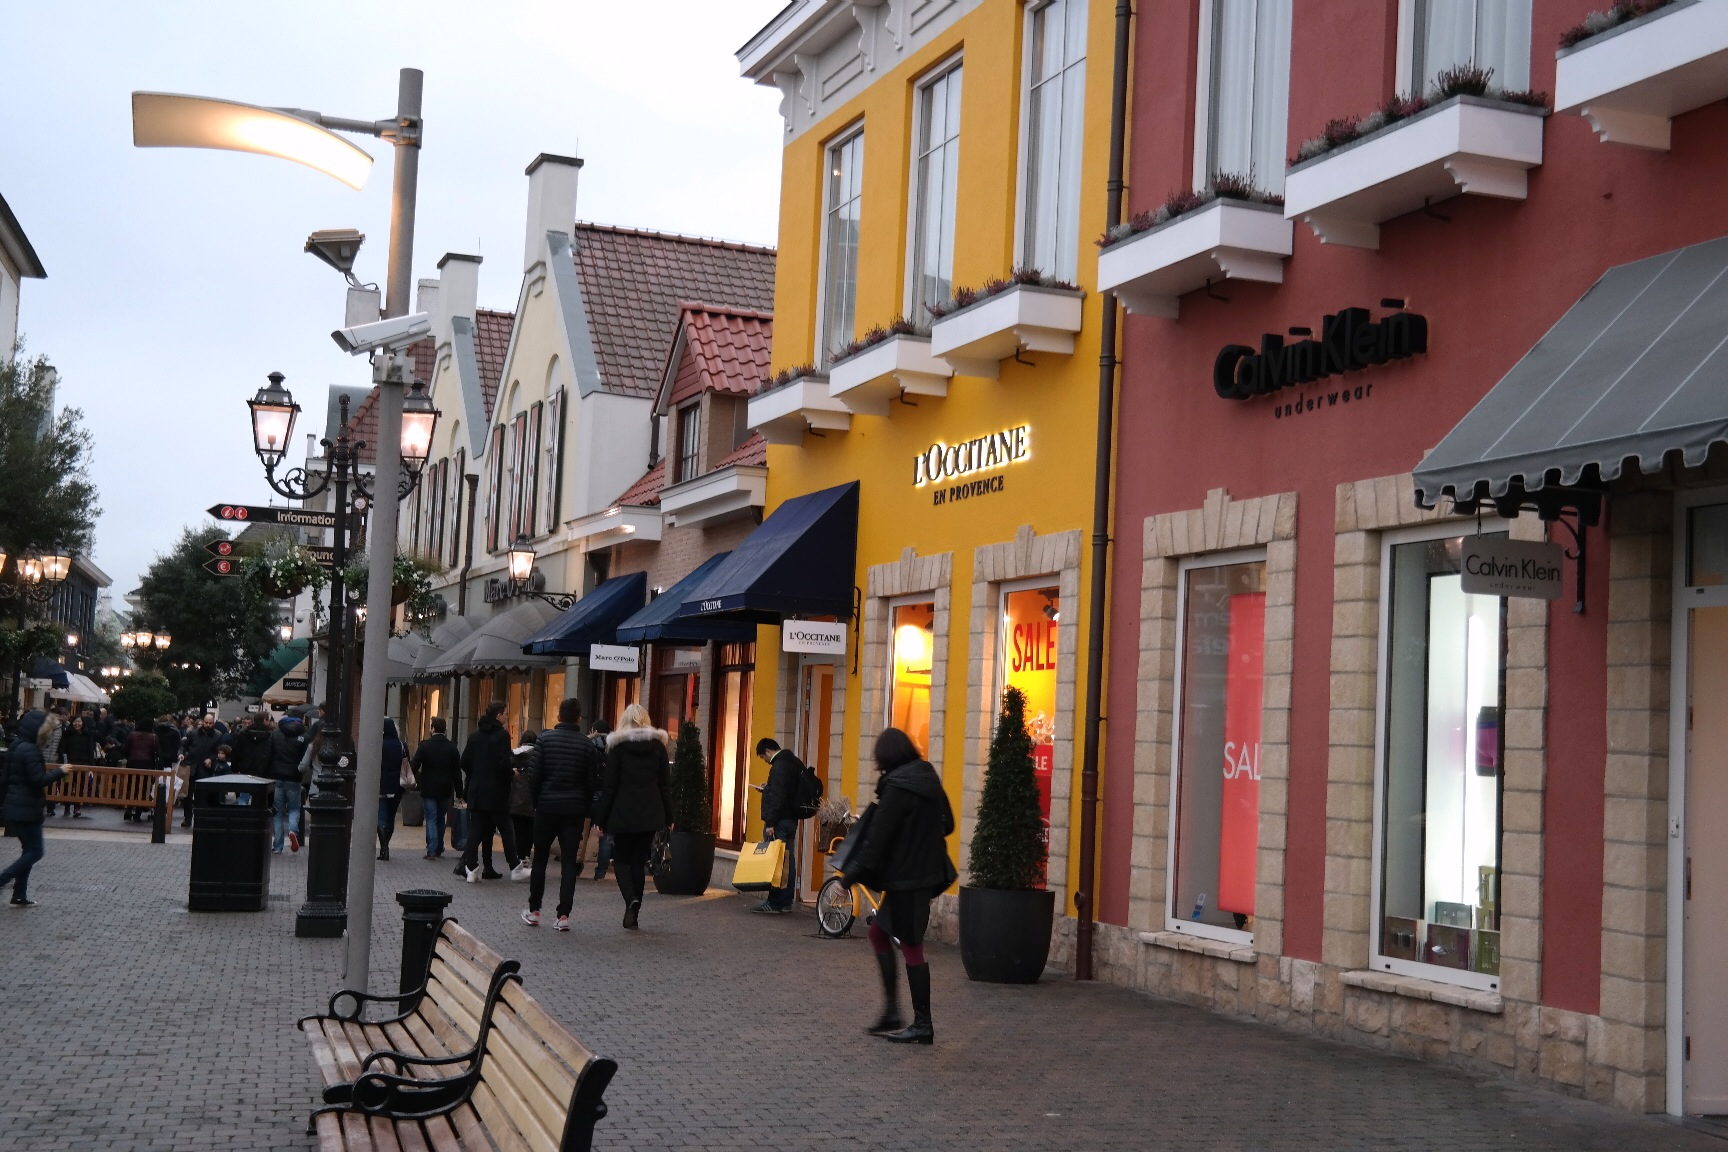 missbb on tour wieder geht 39 s nach holland outlet shopping in roermond missbonn e bonn e. Black Bedroom Furniture Sets. Home Design Ideas